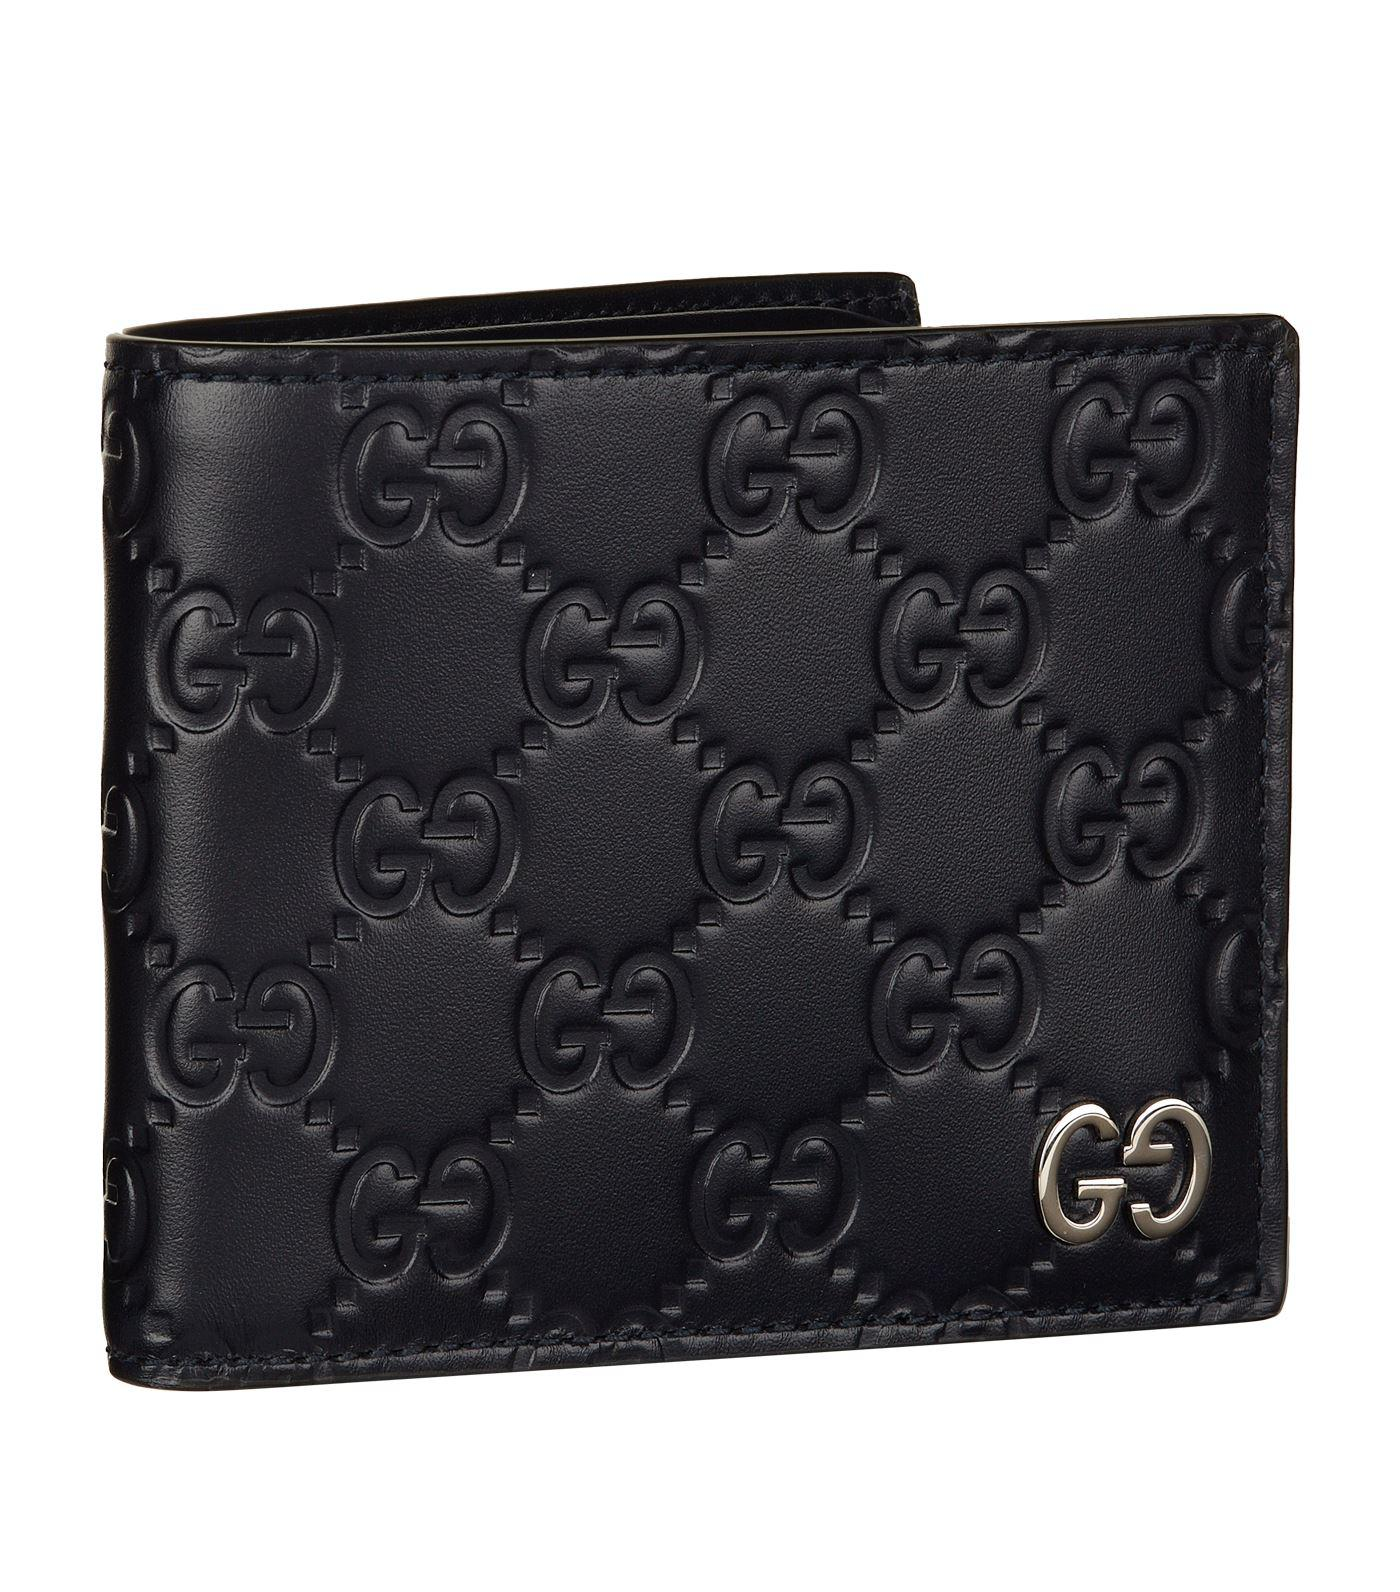 fc23fd15b47 Lyst - Gucci Marmont Bifold Coin Wallet in Black for Men